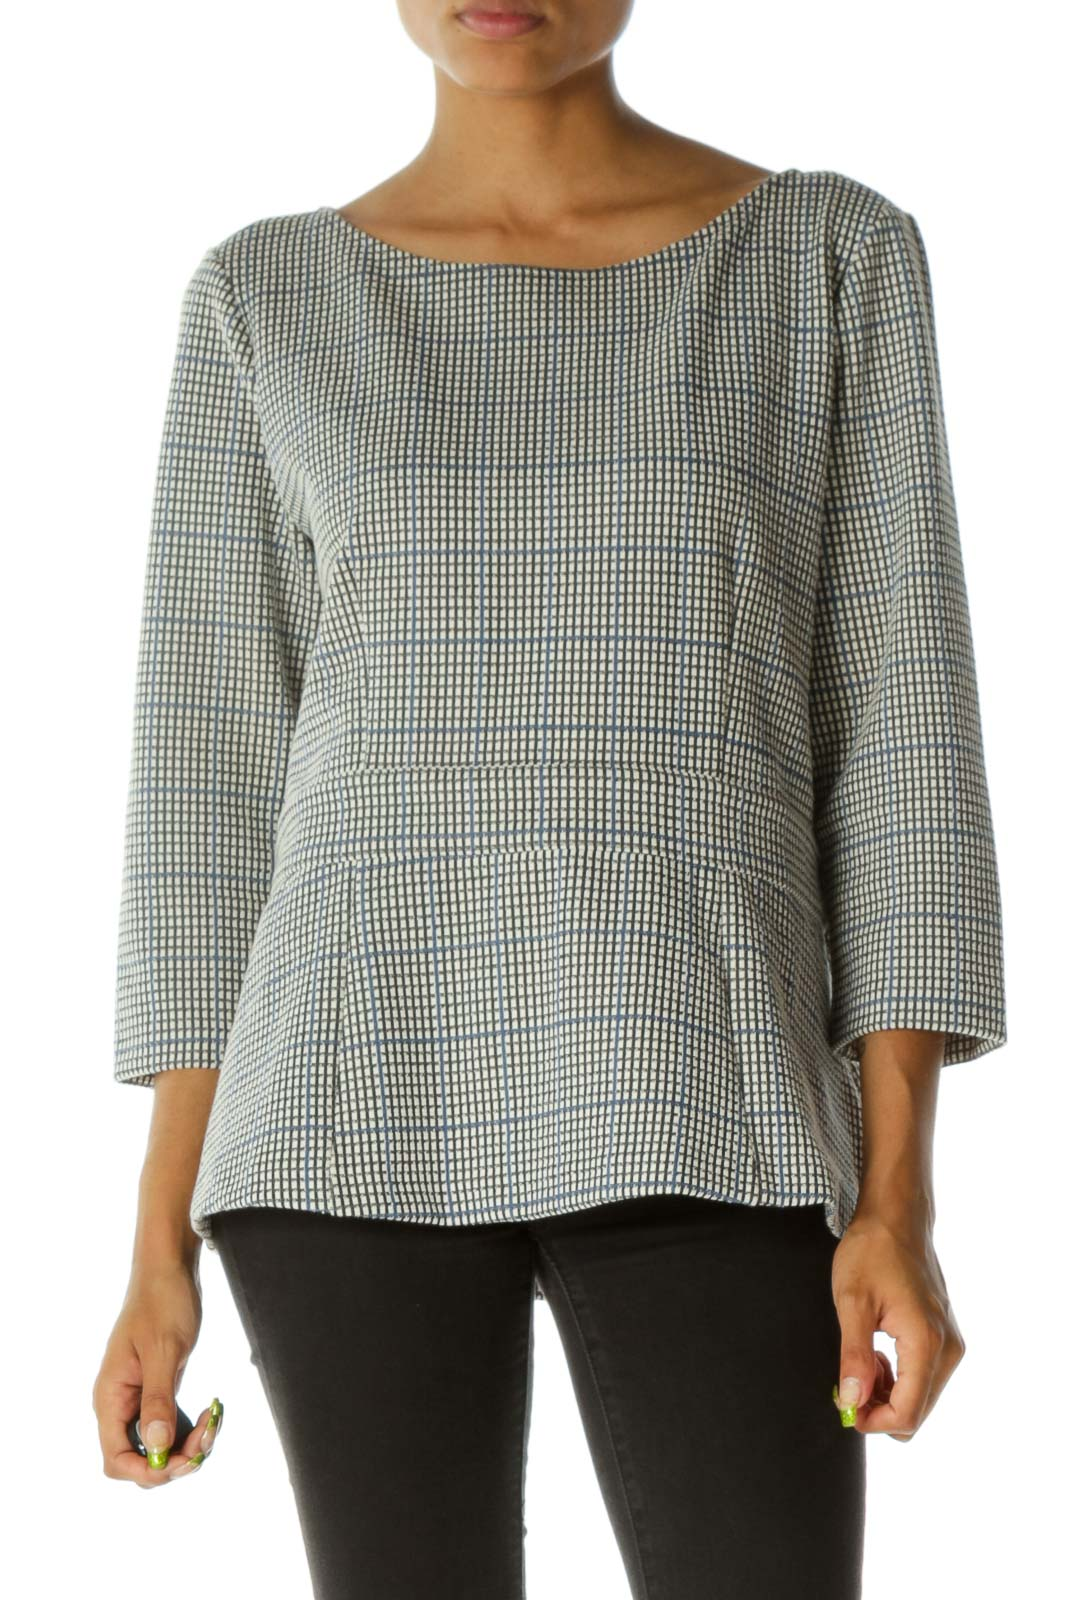 Cream Black Blue Boat Neck Textured Zippered Knit Top